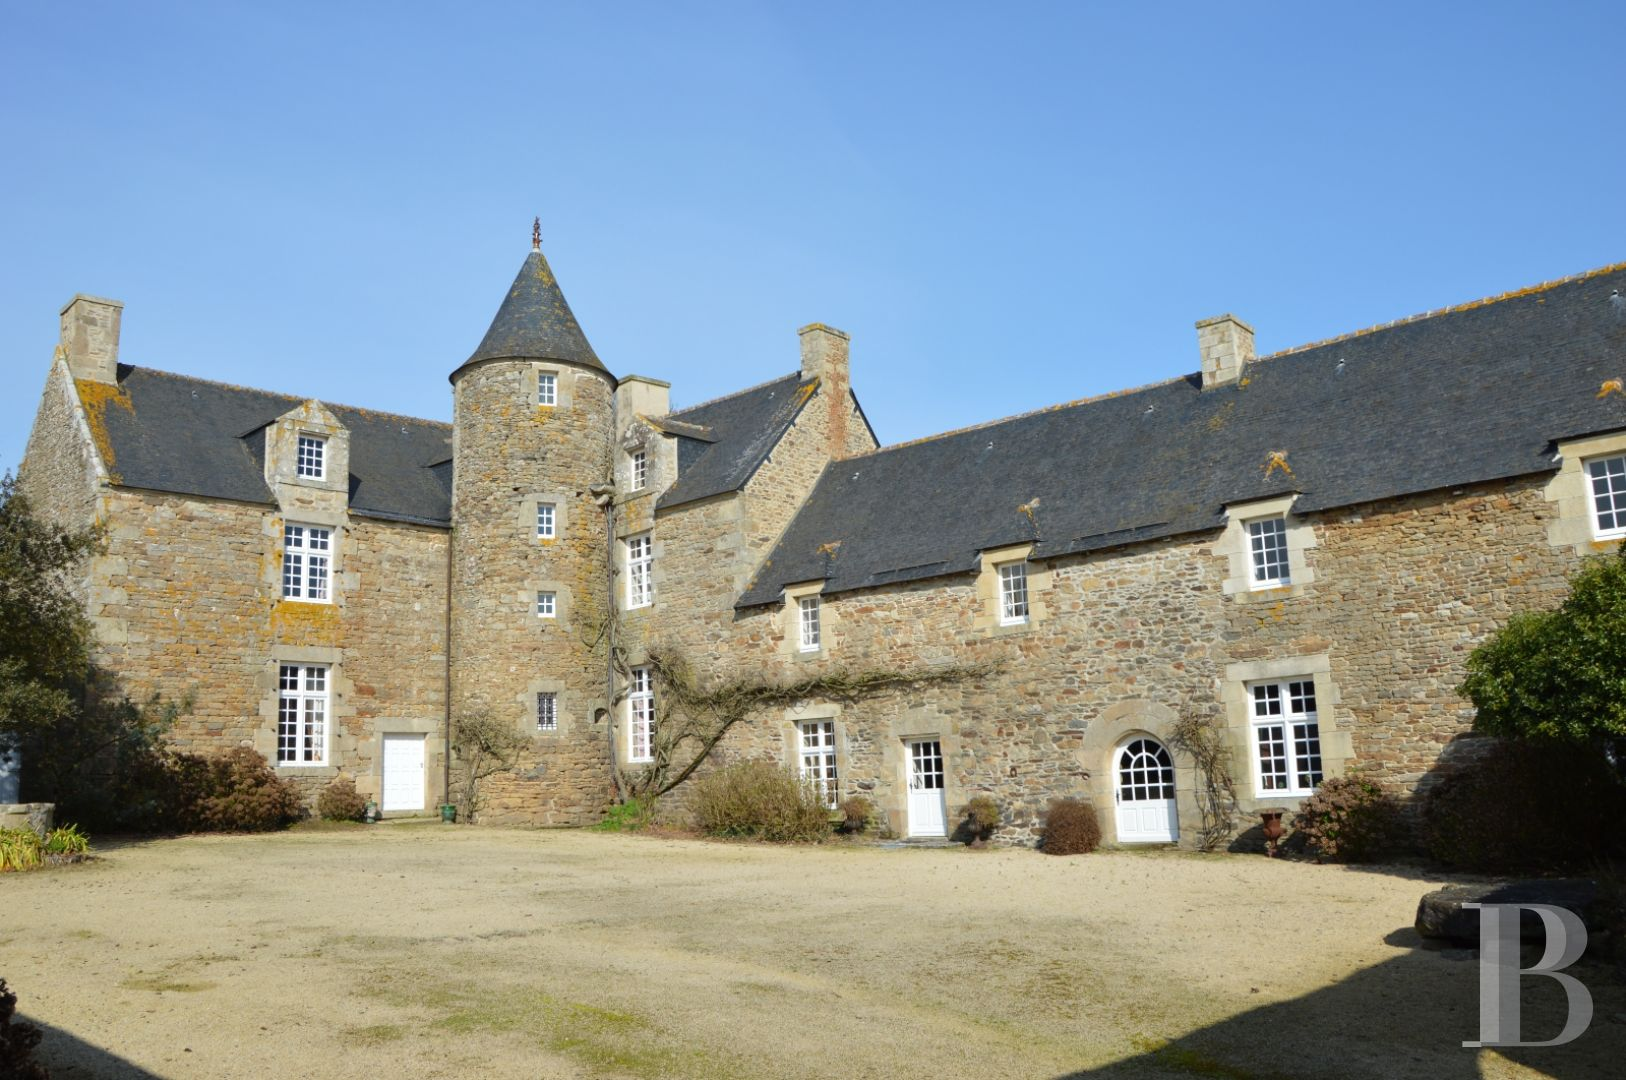 France mansions for sale brittany residence brittany - 1 zoom